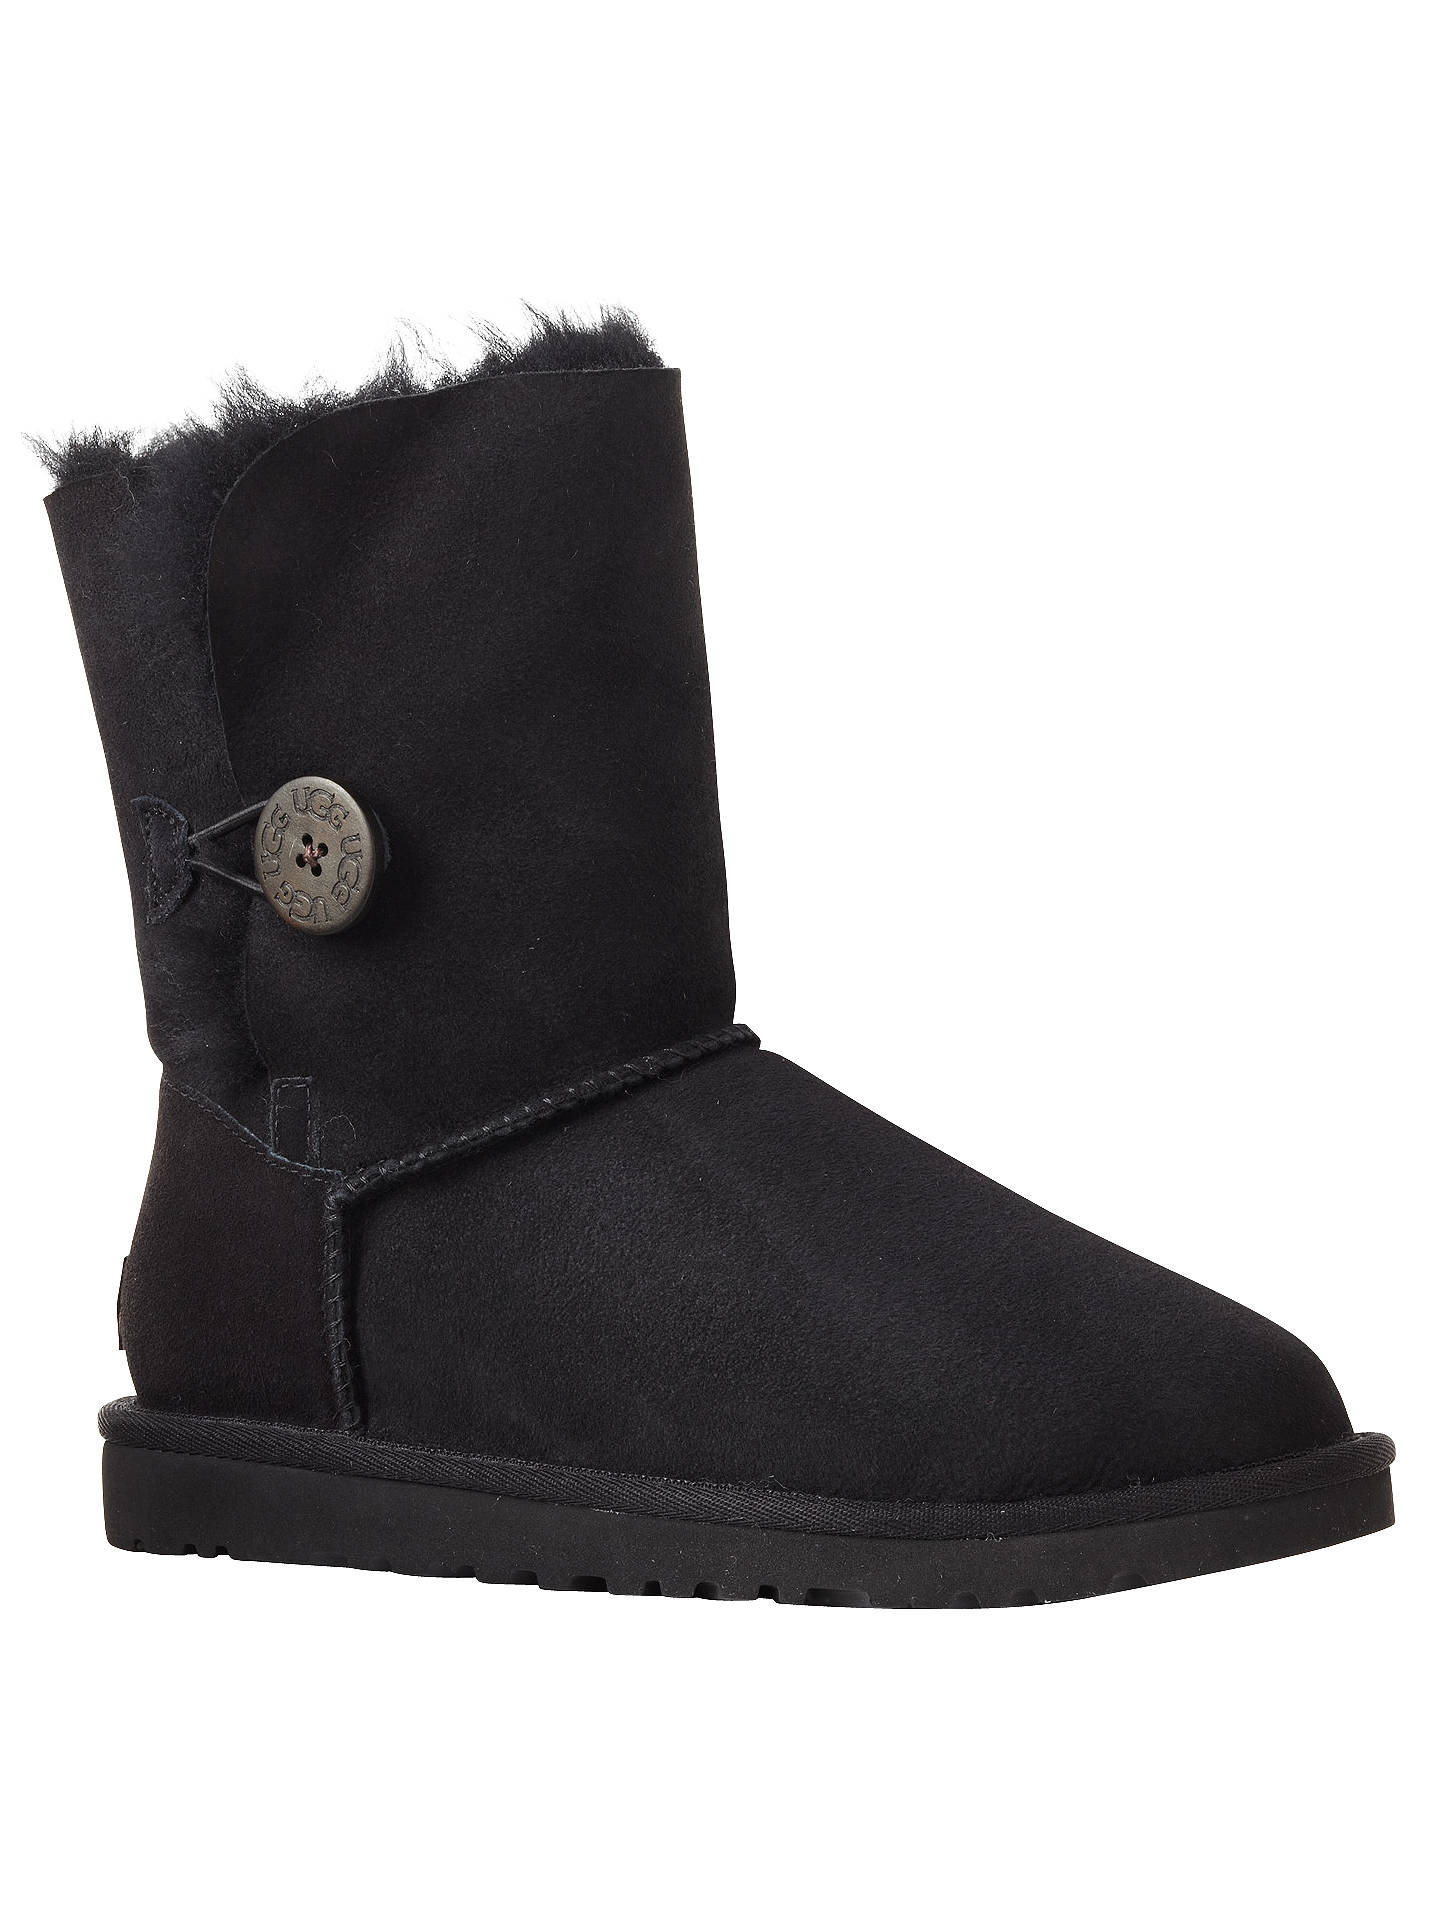 458a8fd7d84 UGG B Button Short Boots at John Lewis & Partners